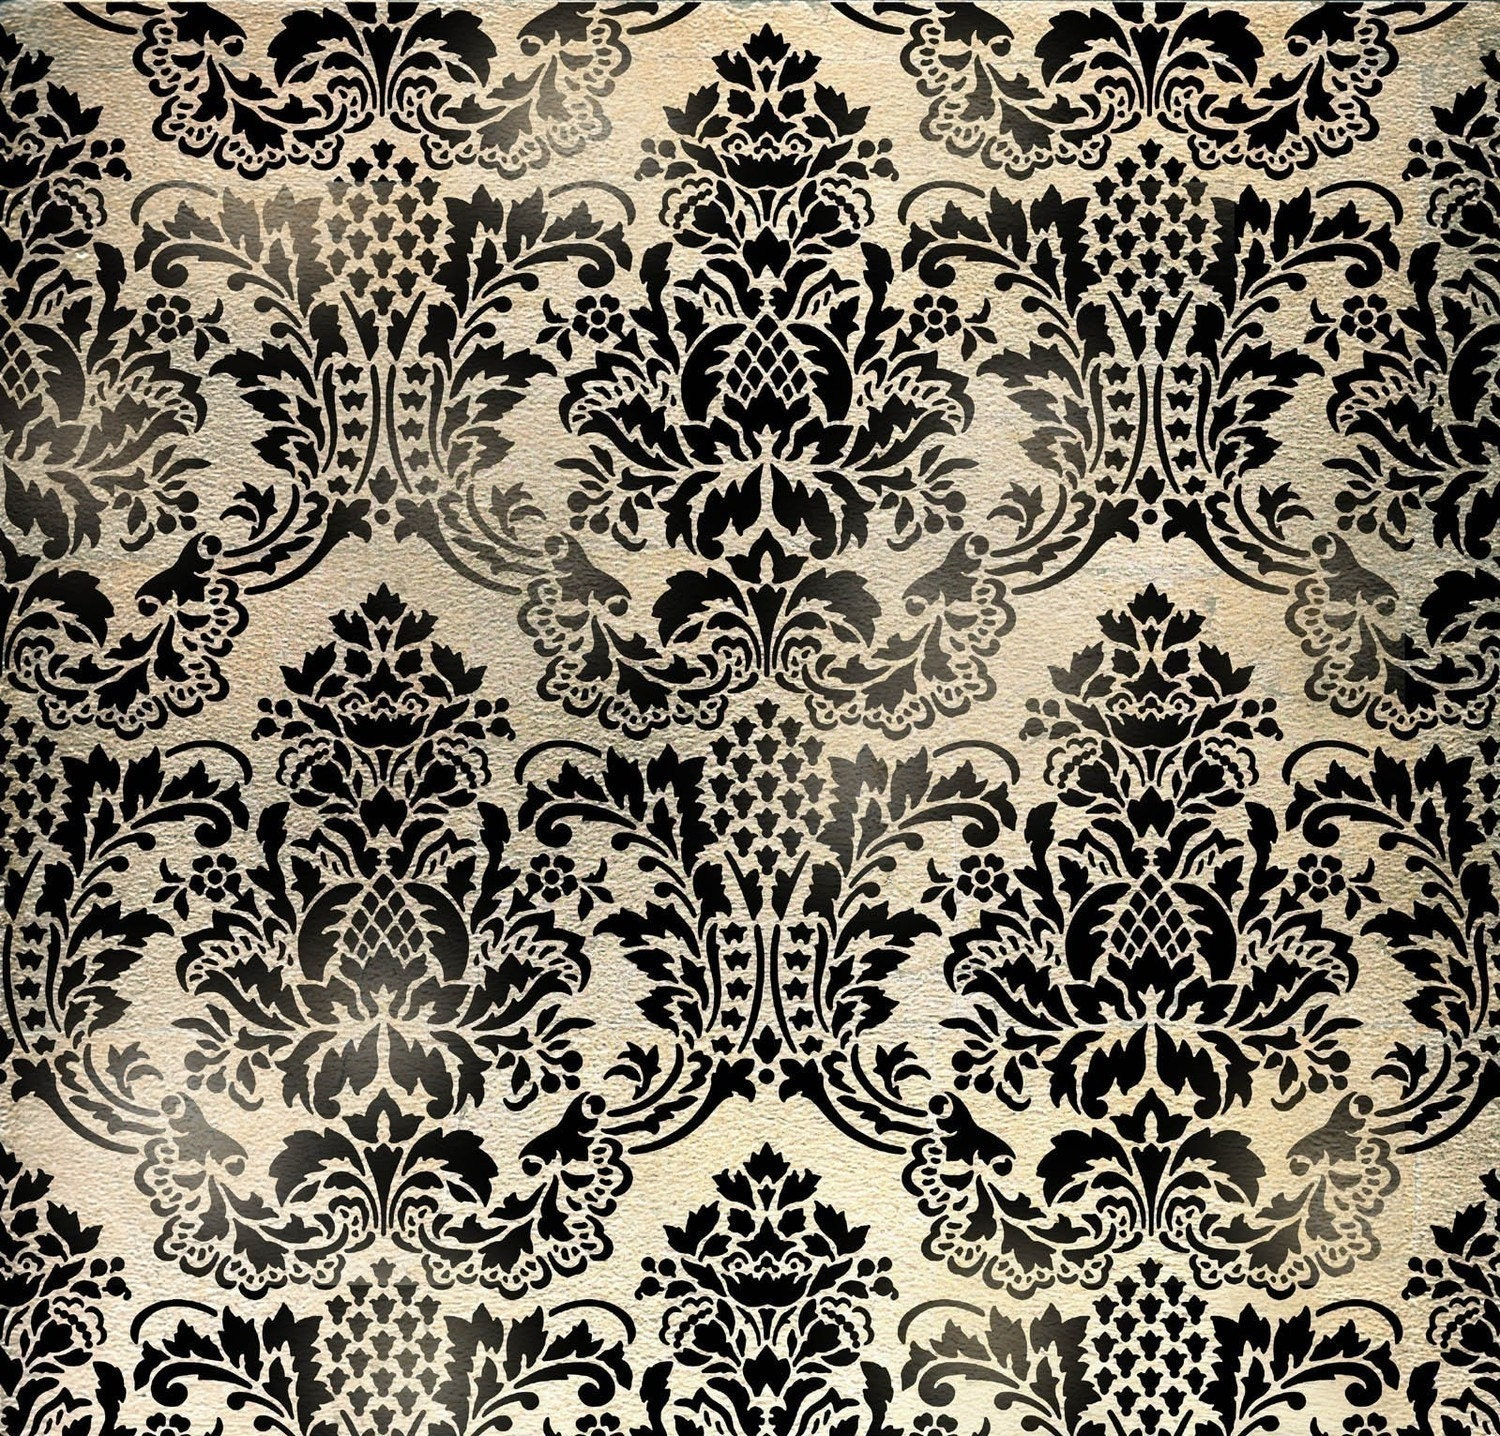 printable damask wallpaper - photo #39